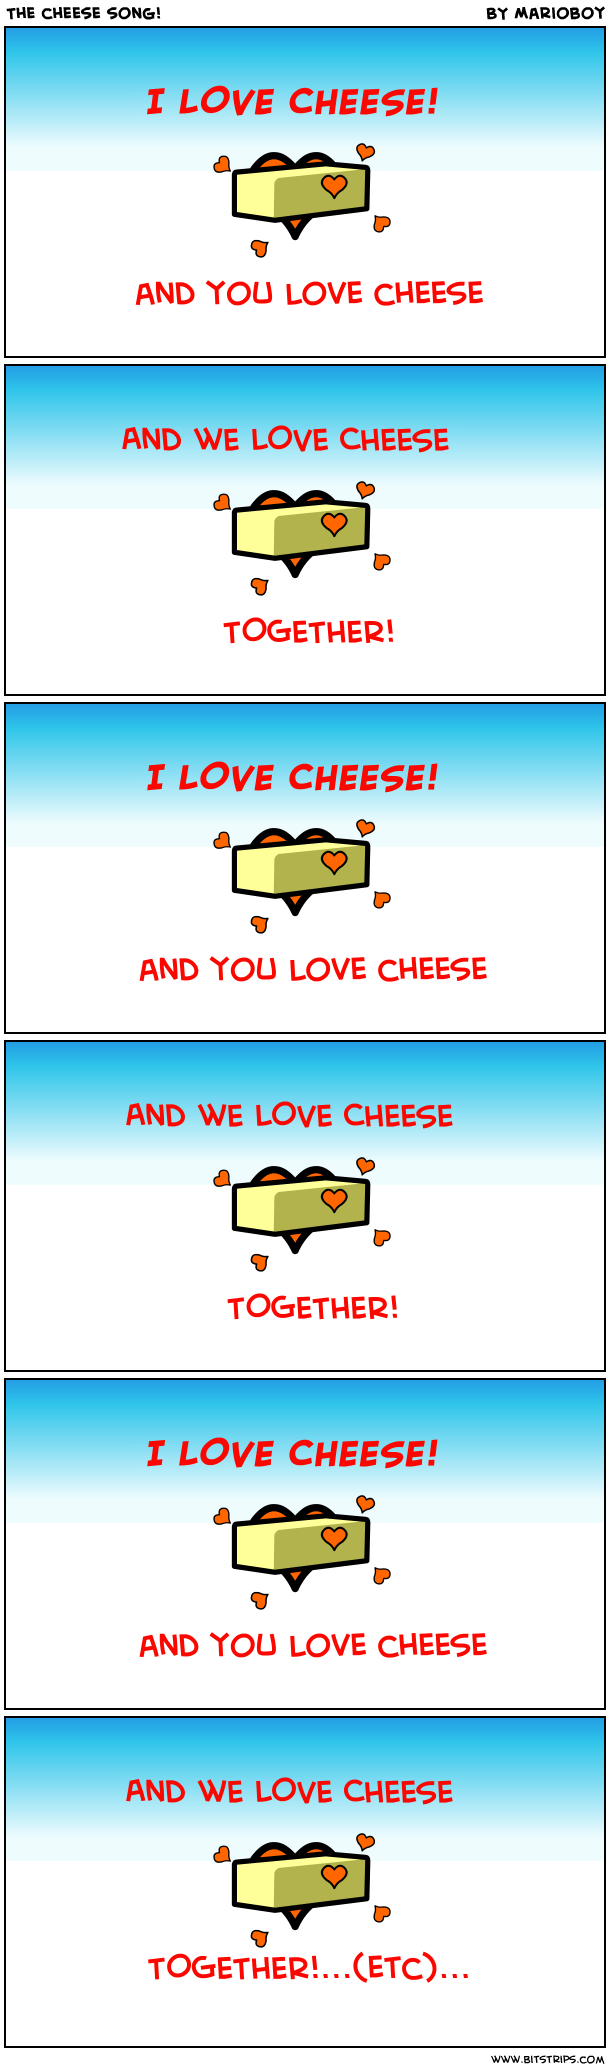 The cheese song!